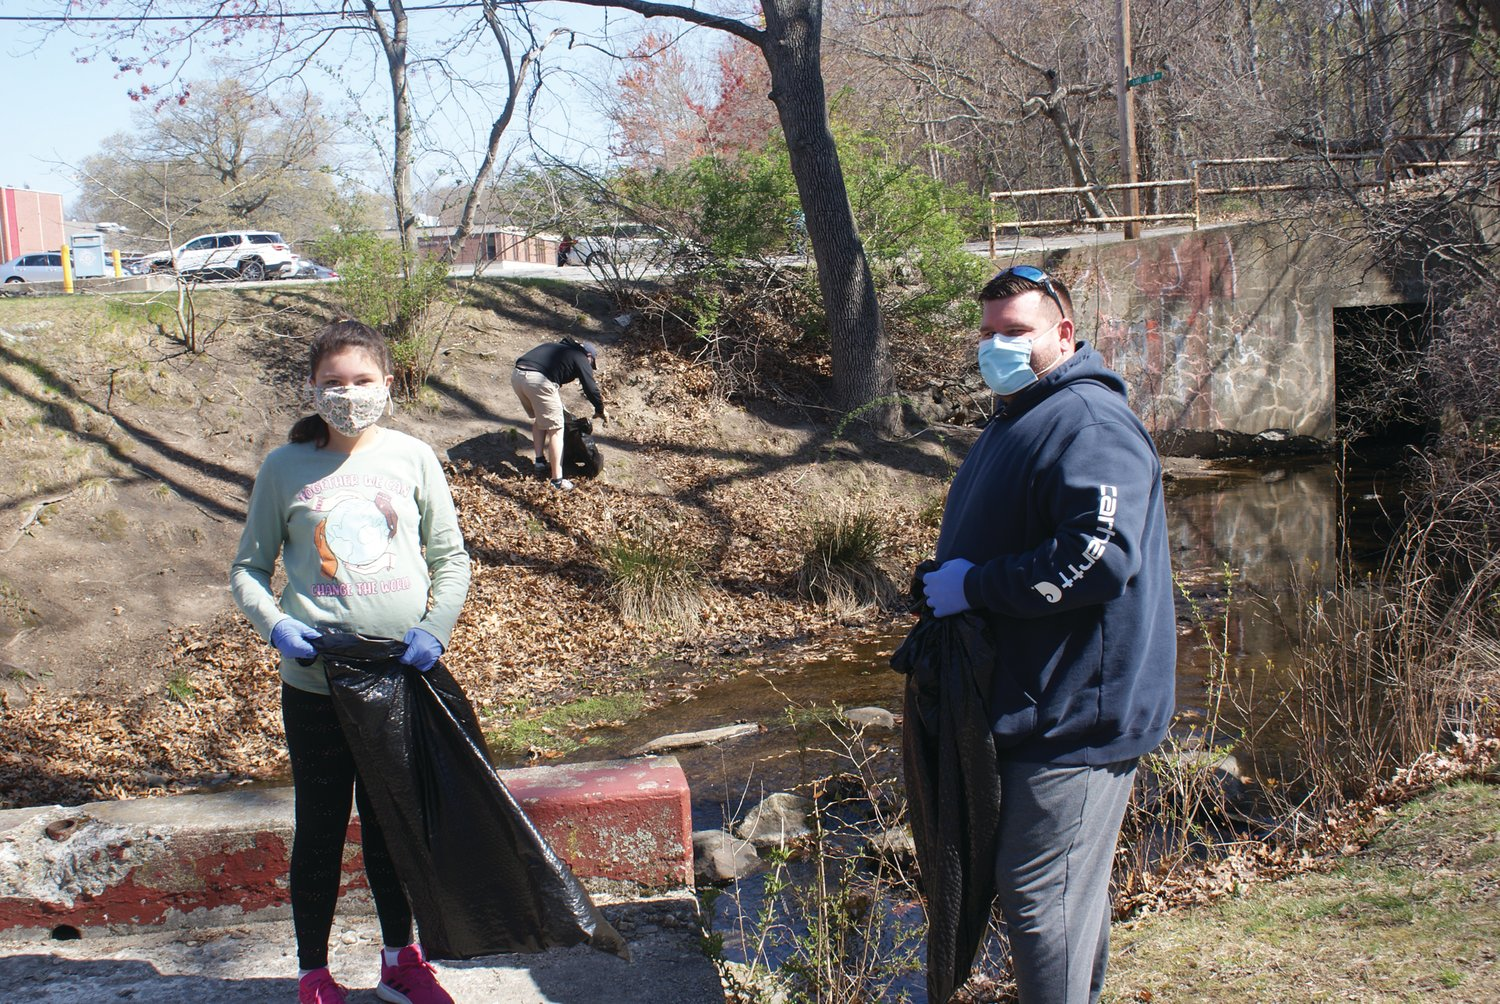 A FAMILY MATTER: City Council President Chris Paplauskas, who represents Ward 5, hosted an Earth Day cleanup at Meschanticut Park on Saturday. He is pictured with his daughter, Sophia, who helped her father throughout the event.